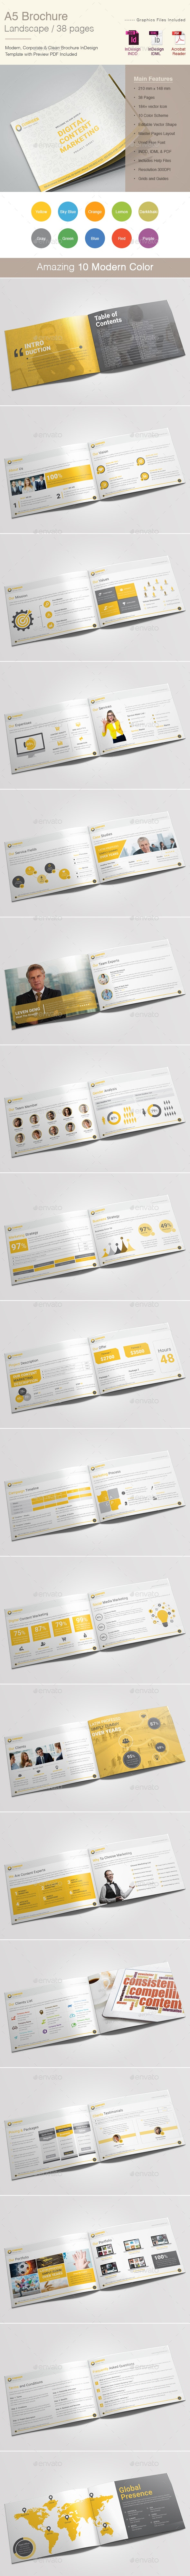 A5 Landscape Content Marketing Brochure - Corporate Brochures